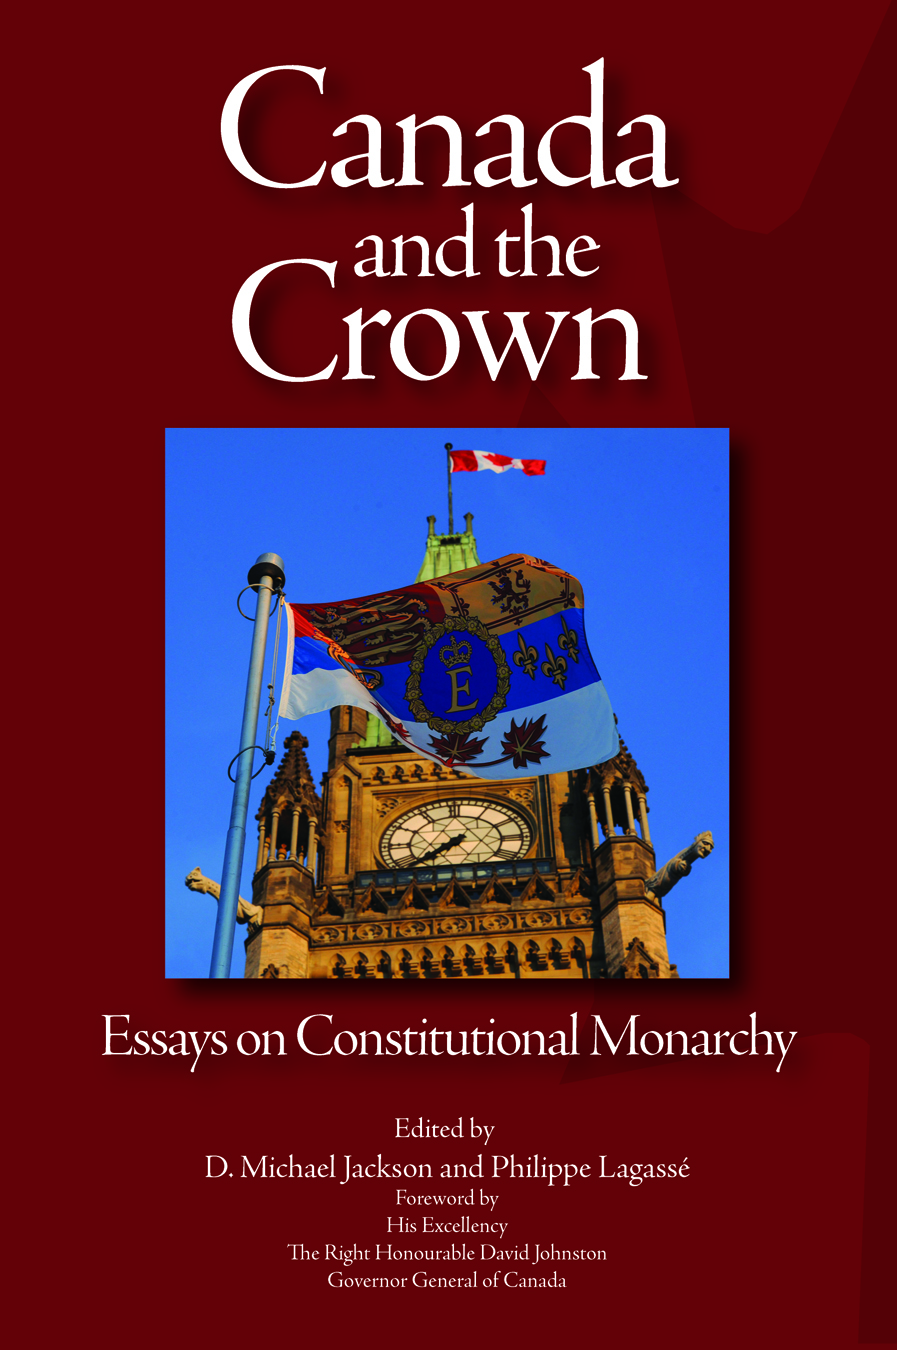 Canada and the Crown book cover [JPG]